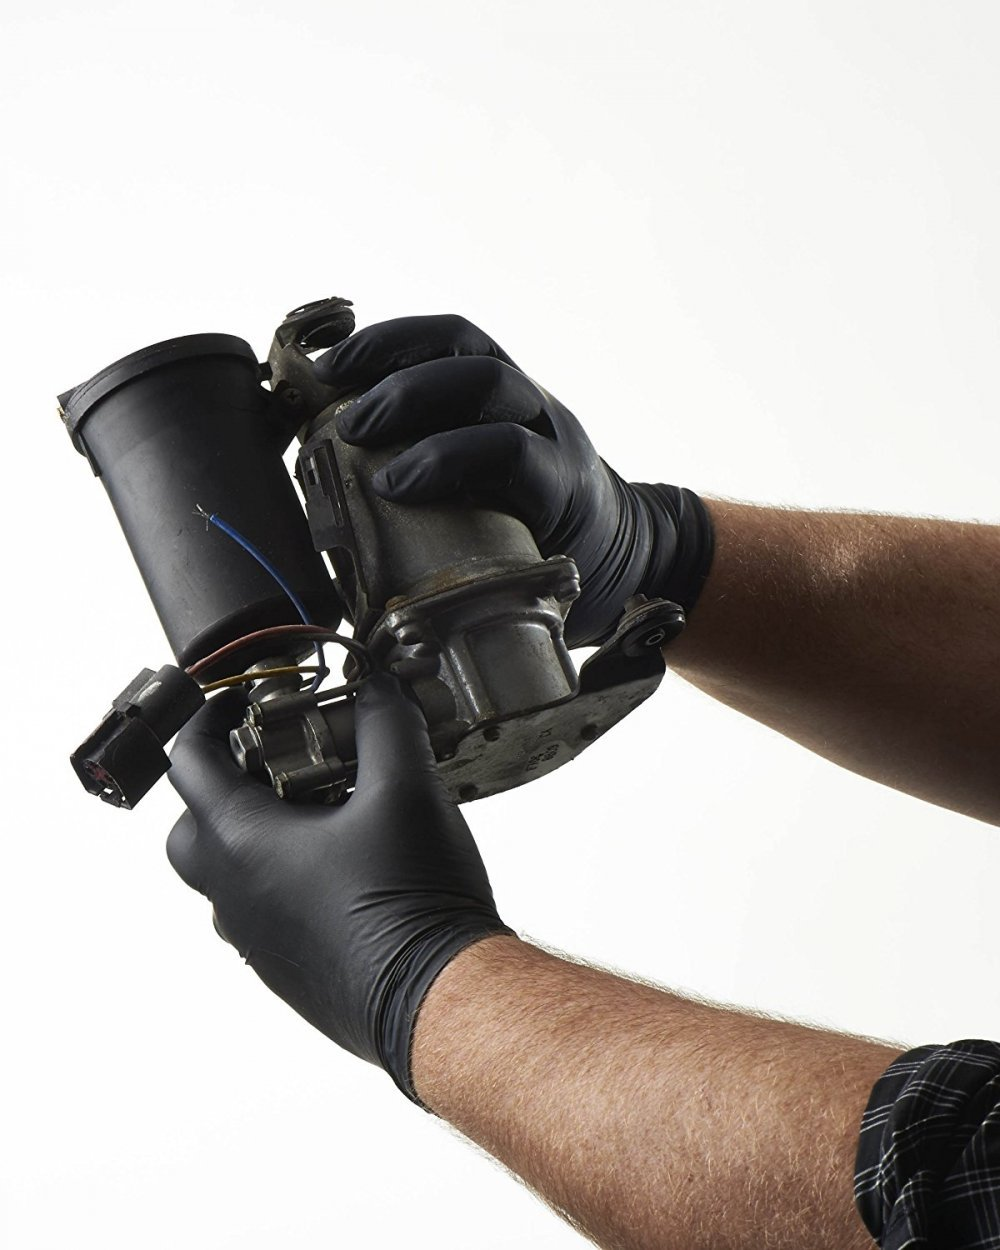 Black Nitrile Disposable Gloves, 5 Mil Thickness, Powder Free, Textured Fingertips, Latex Free, Heavy Duty (1000, Medium)